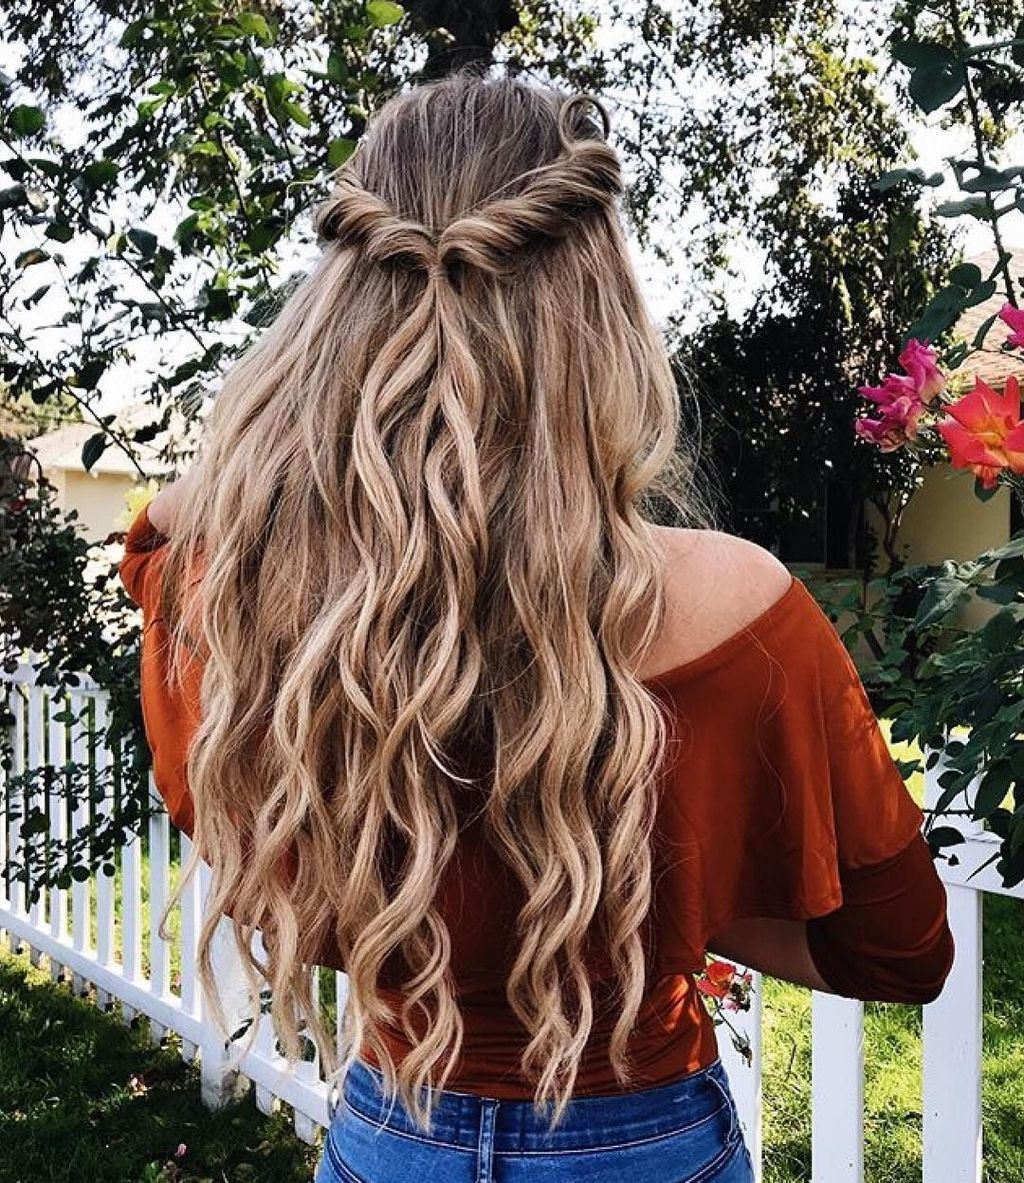 38 Beautiful Long Curly Hairstyle Inspirations Trends Curly Hair